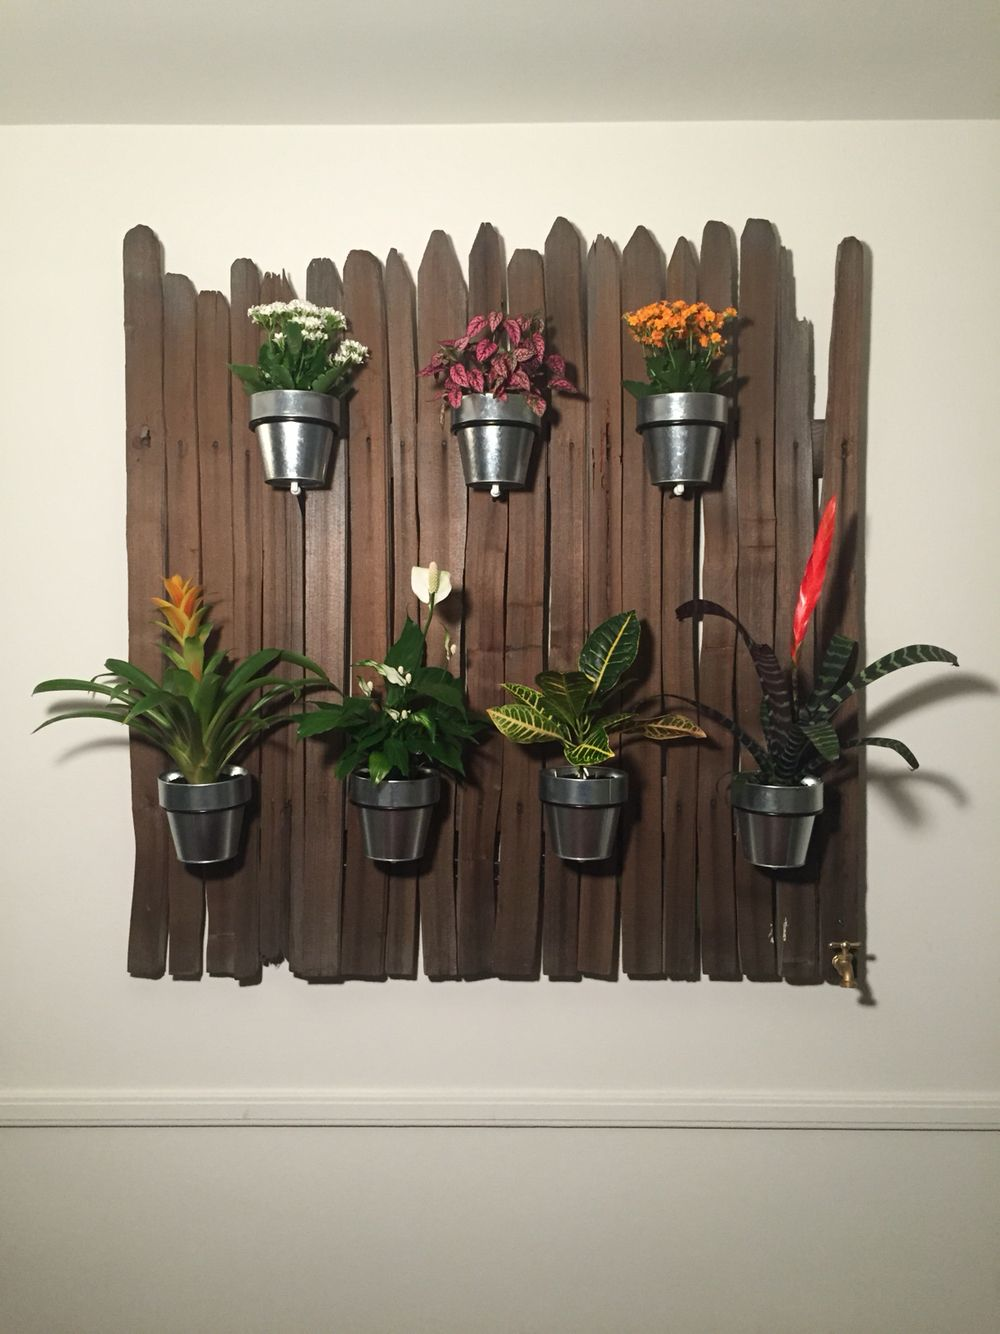 Wall planter made from an old fence. It includes a full drainage system. It's a fantastic wall feature for our dining area.